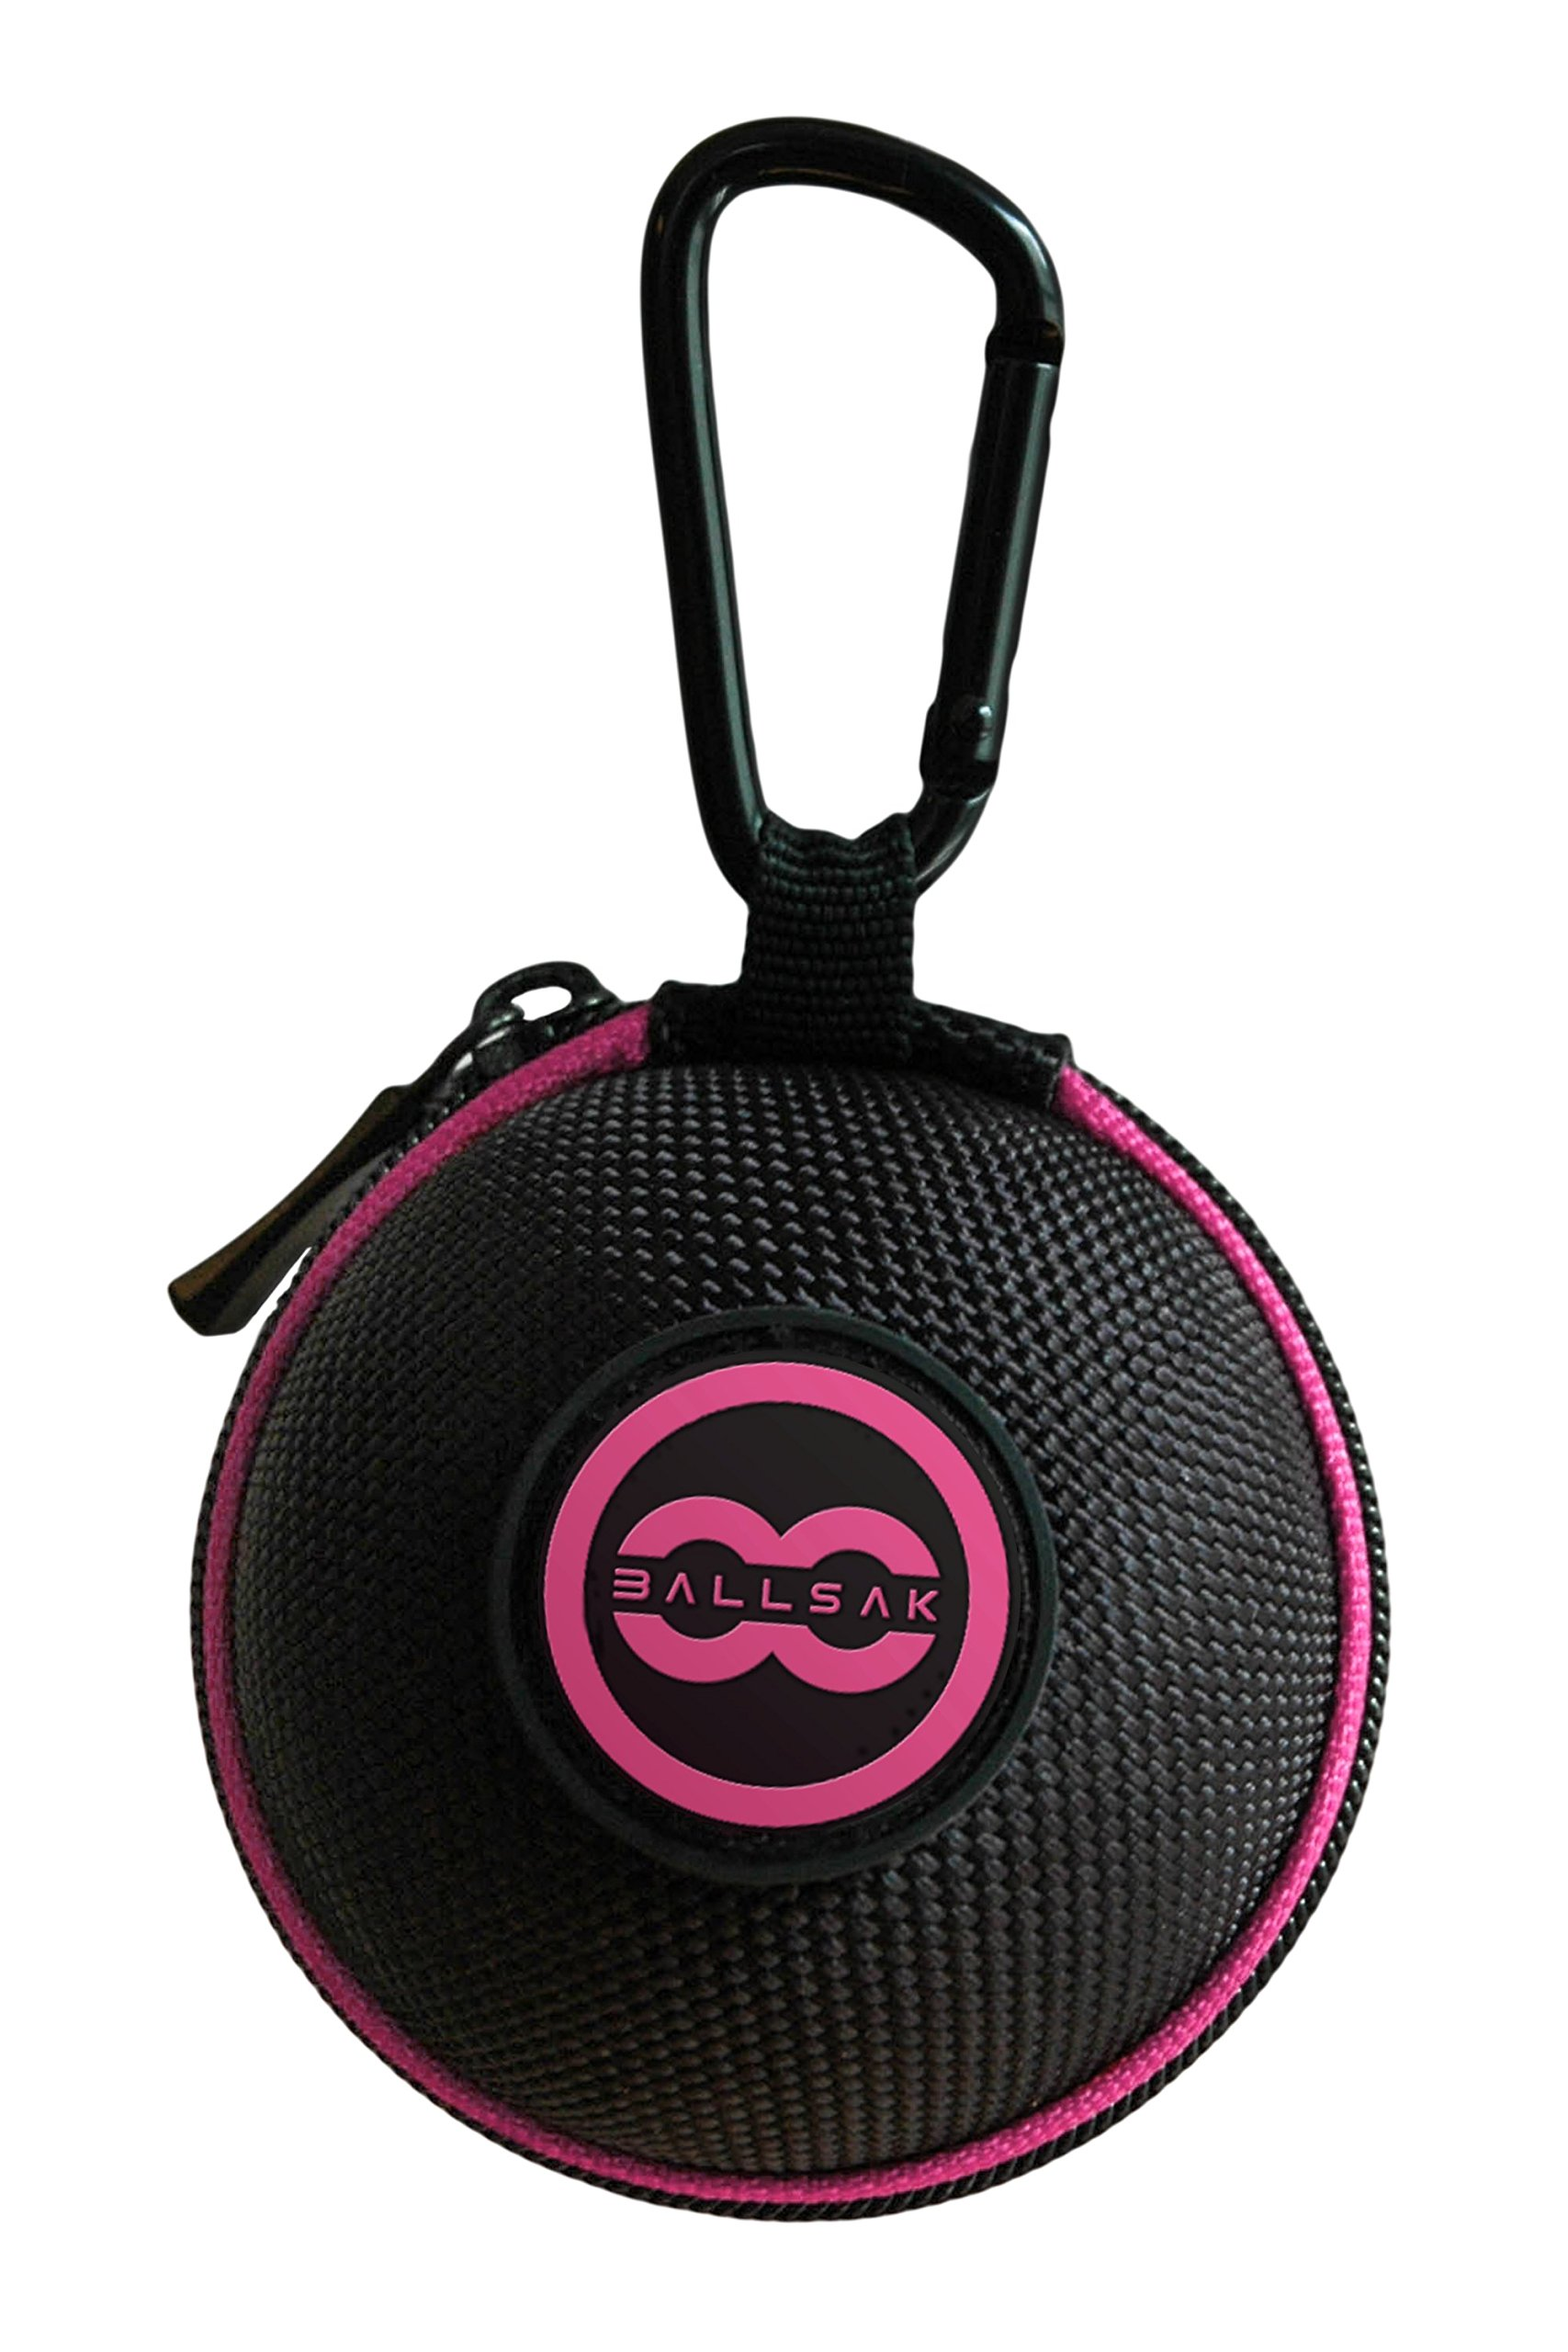 Ballsak Sport - Pink/Black - Clip-on Cue Ball Case, Cue Ball Bag for Attaching Cue Balls, Pool Balls, Billiard Balls, Training Balls to Your Cue Stick Bag EXTRA STRONG STRAP DESIGN!